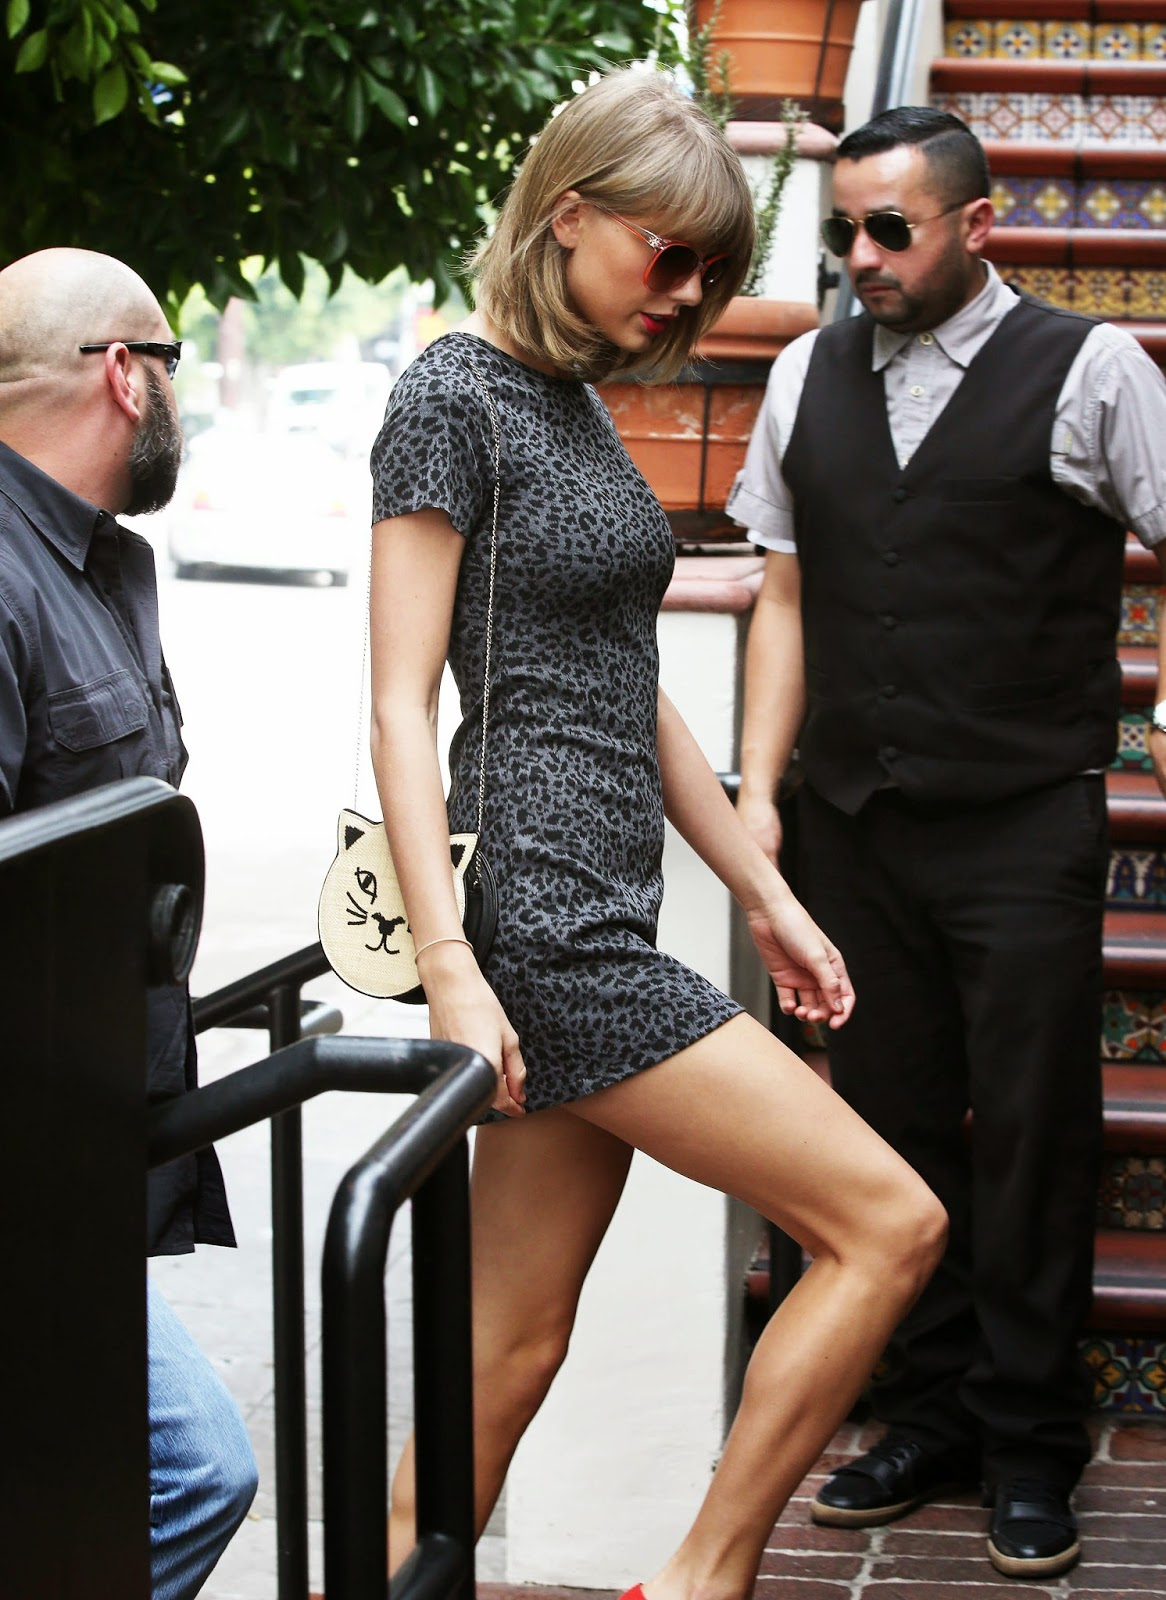 very hot and nude pics of taylor swift